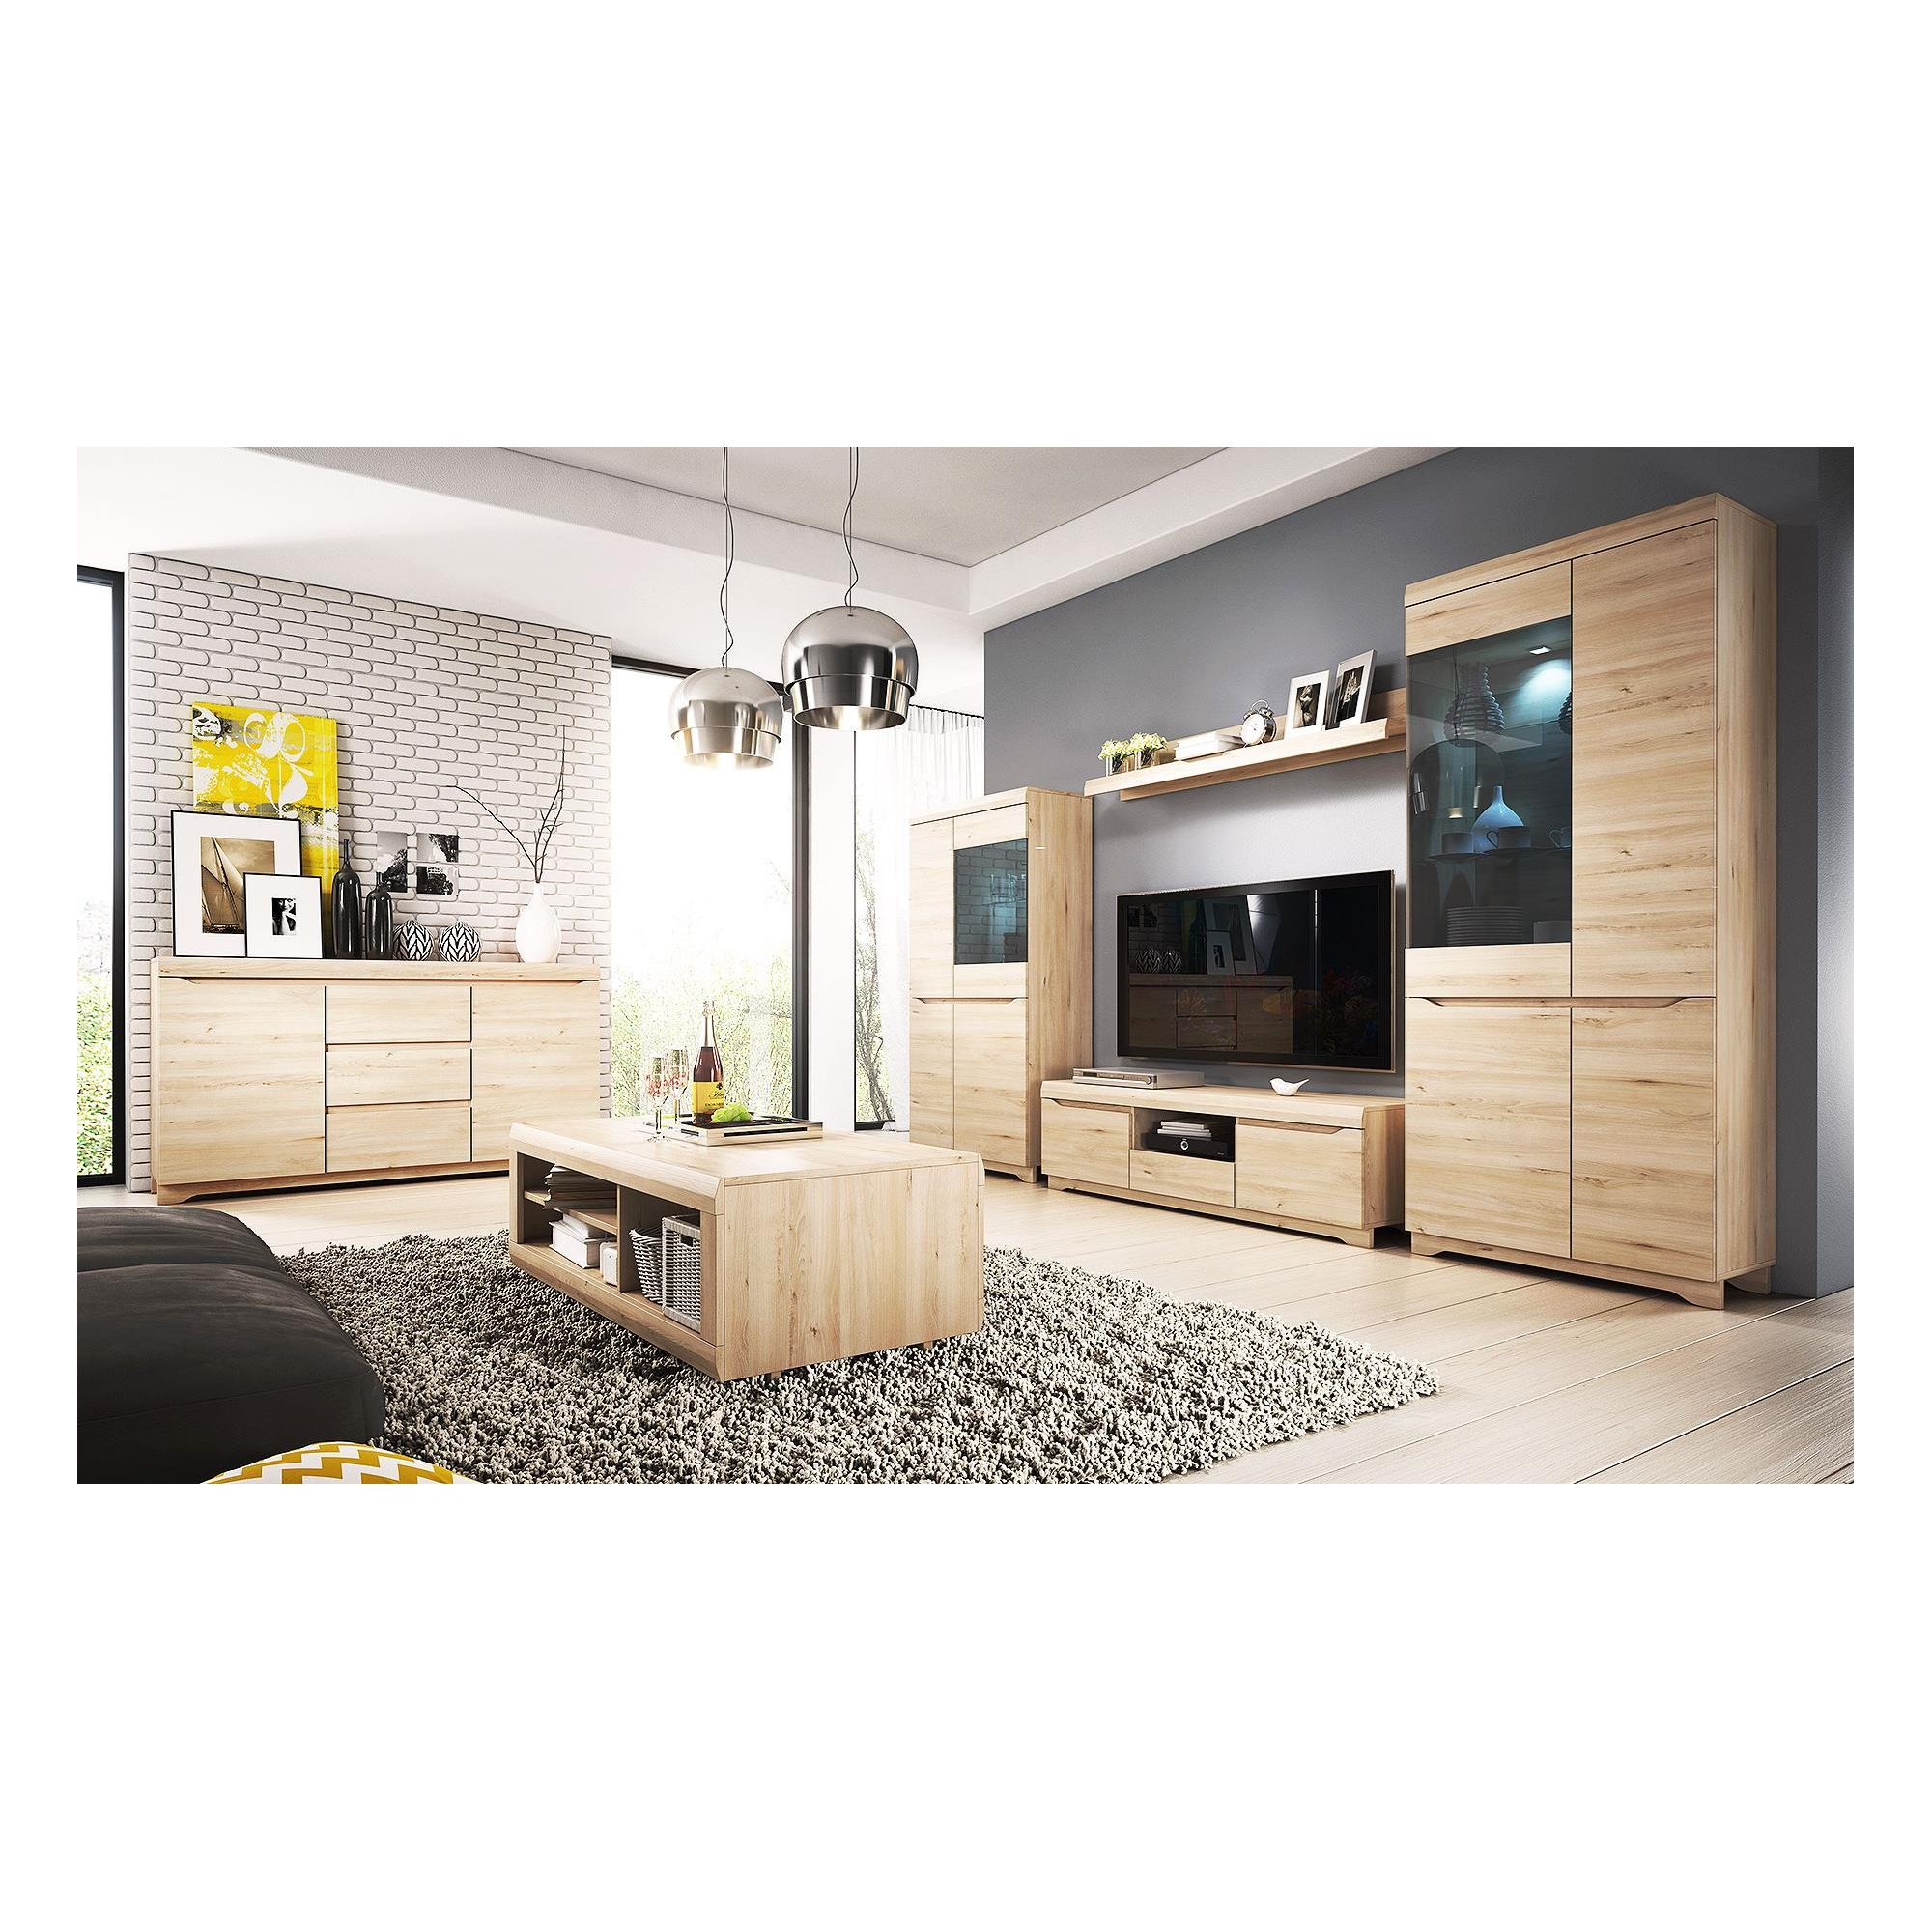 Living Room Furniture In Beech Color. Loading Zoom